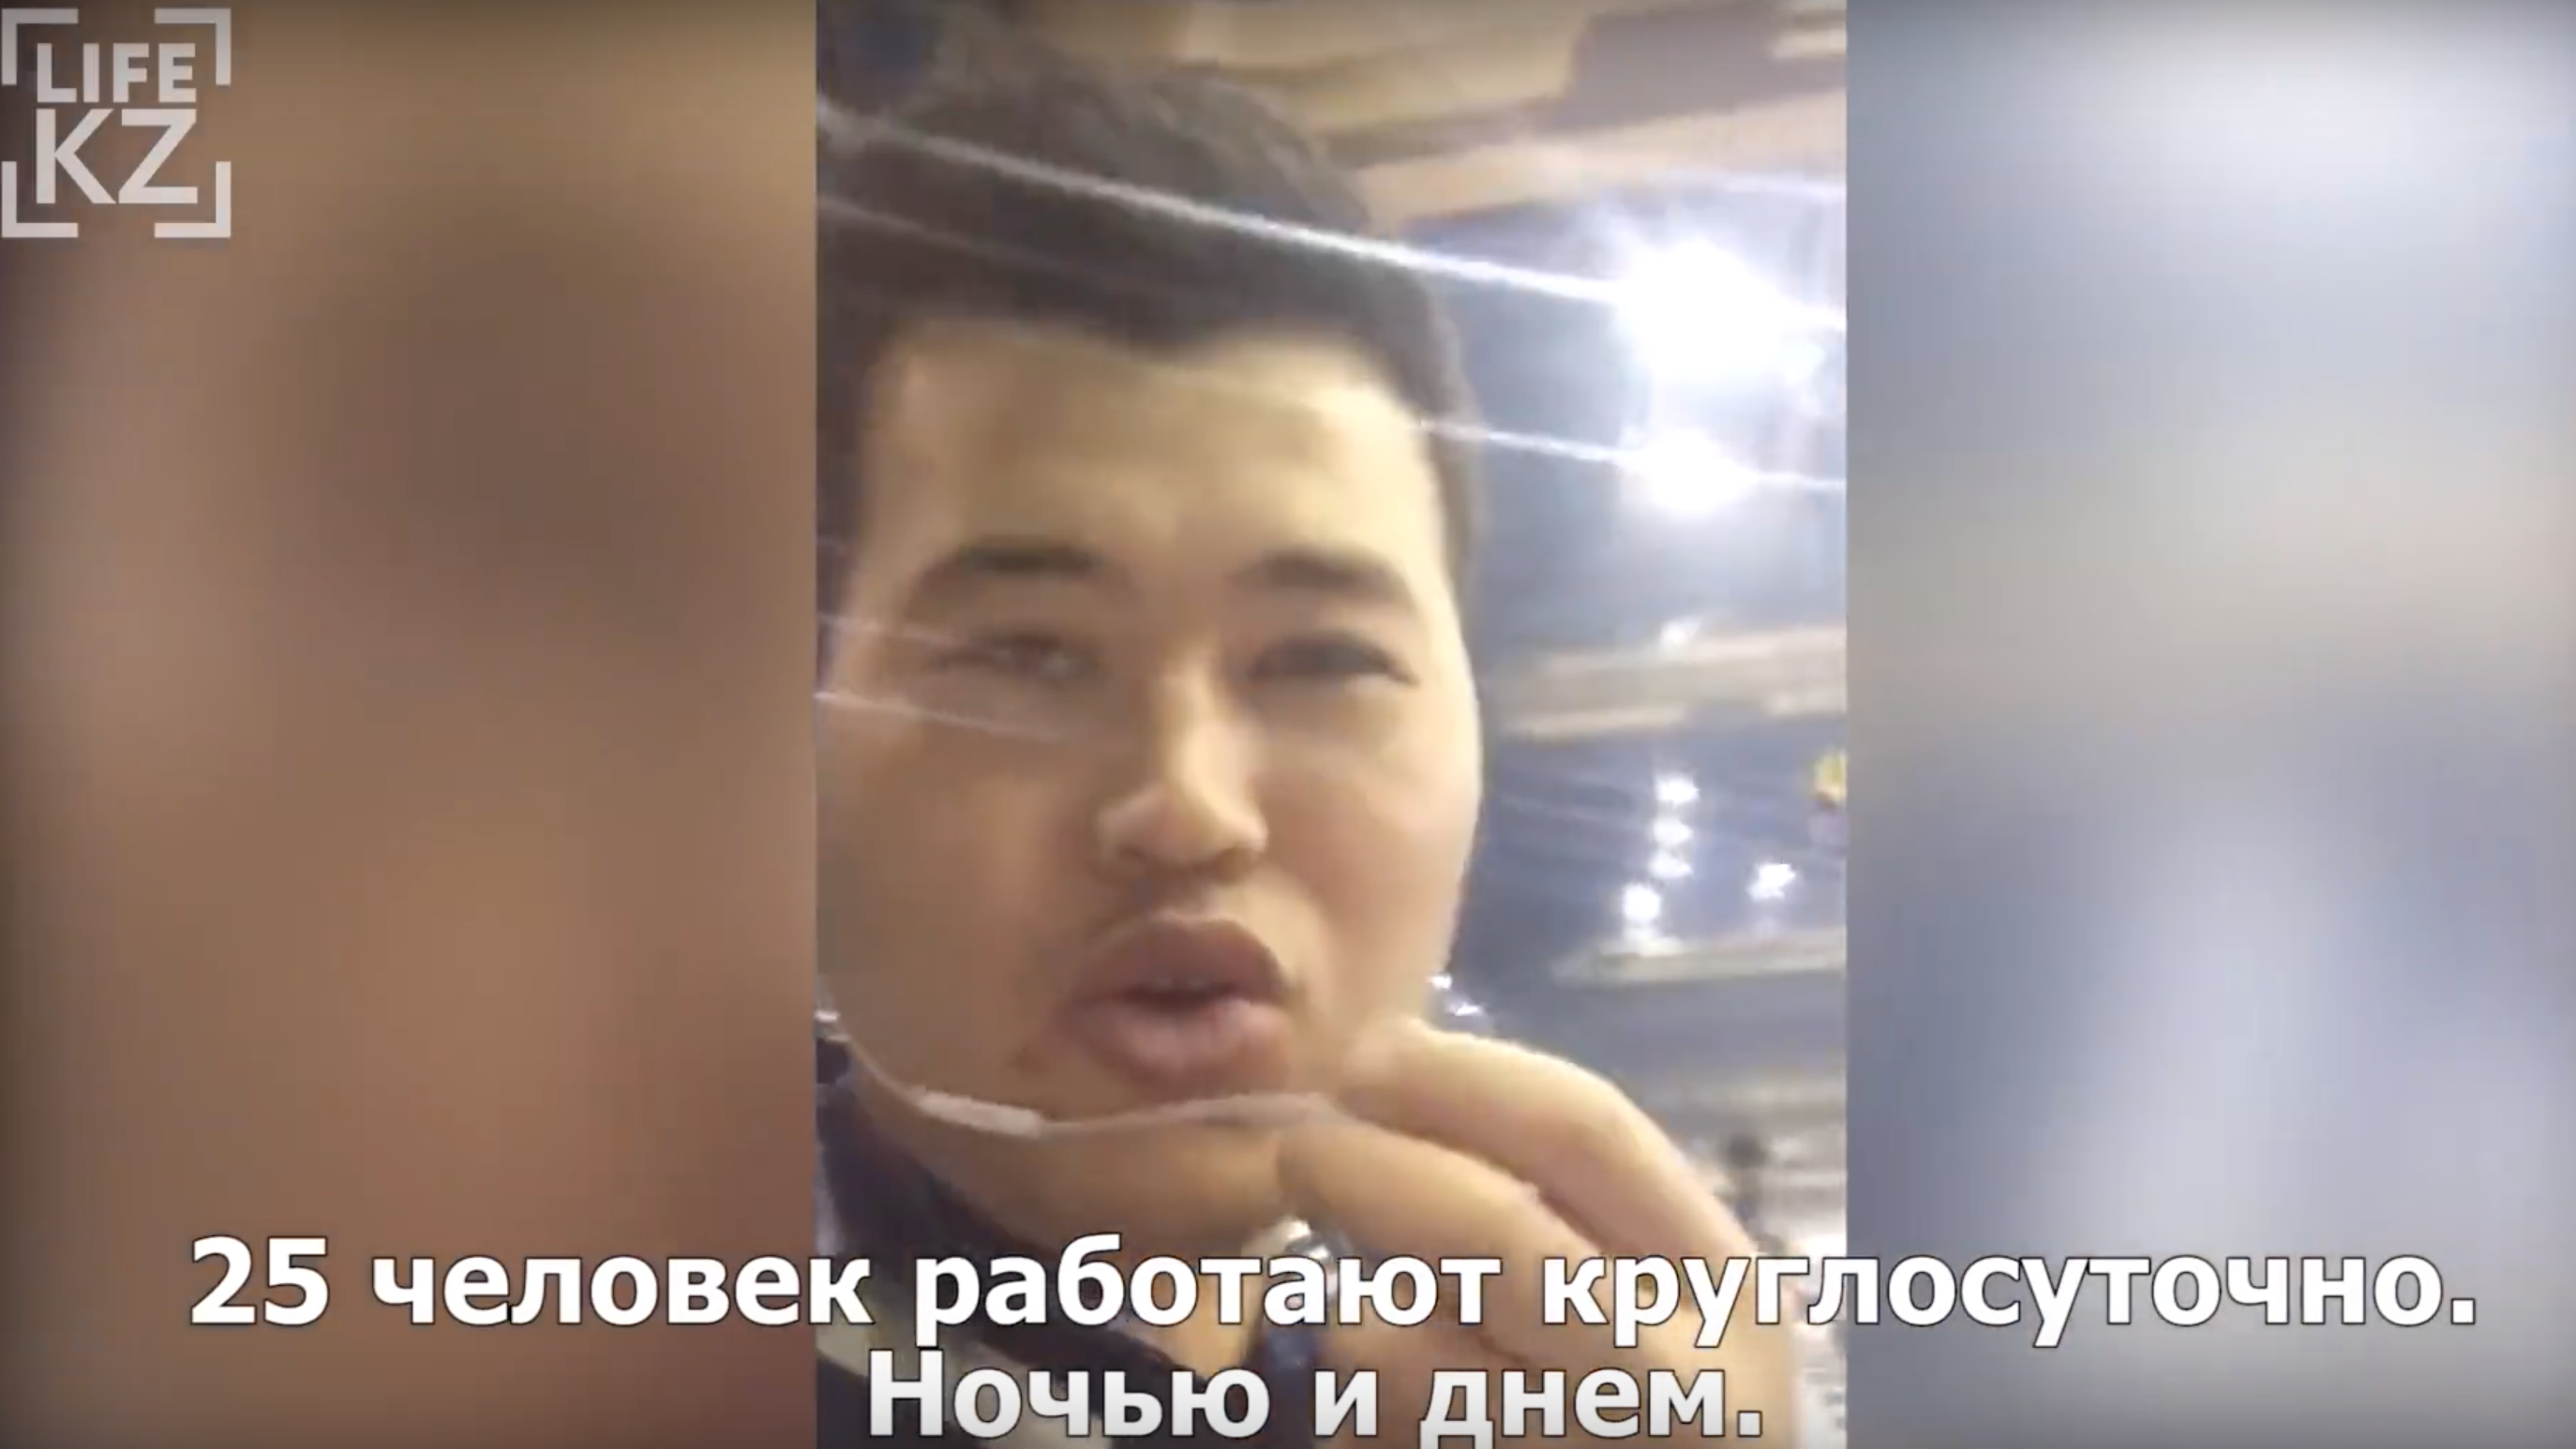 Korea advisor: Kazakh worker giving tips over a messaging app about how it is to work in South Korea. (Photo: Screenshot from Life KZ YouTube account)